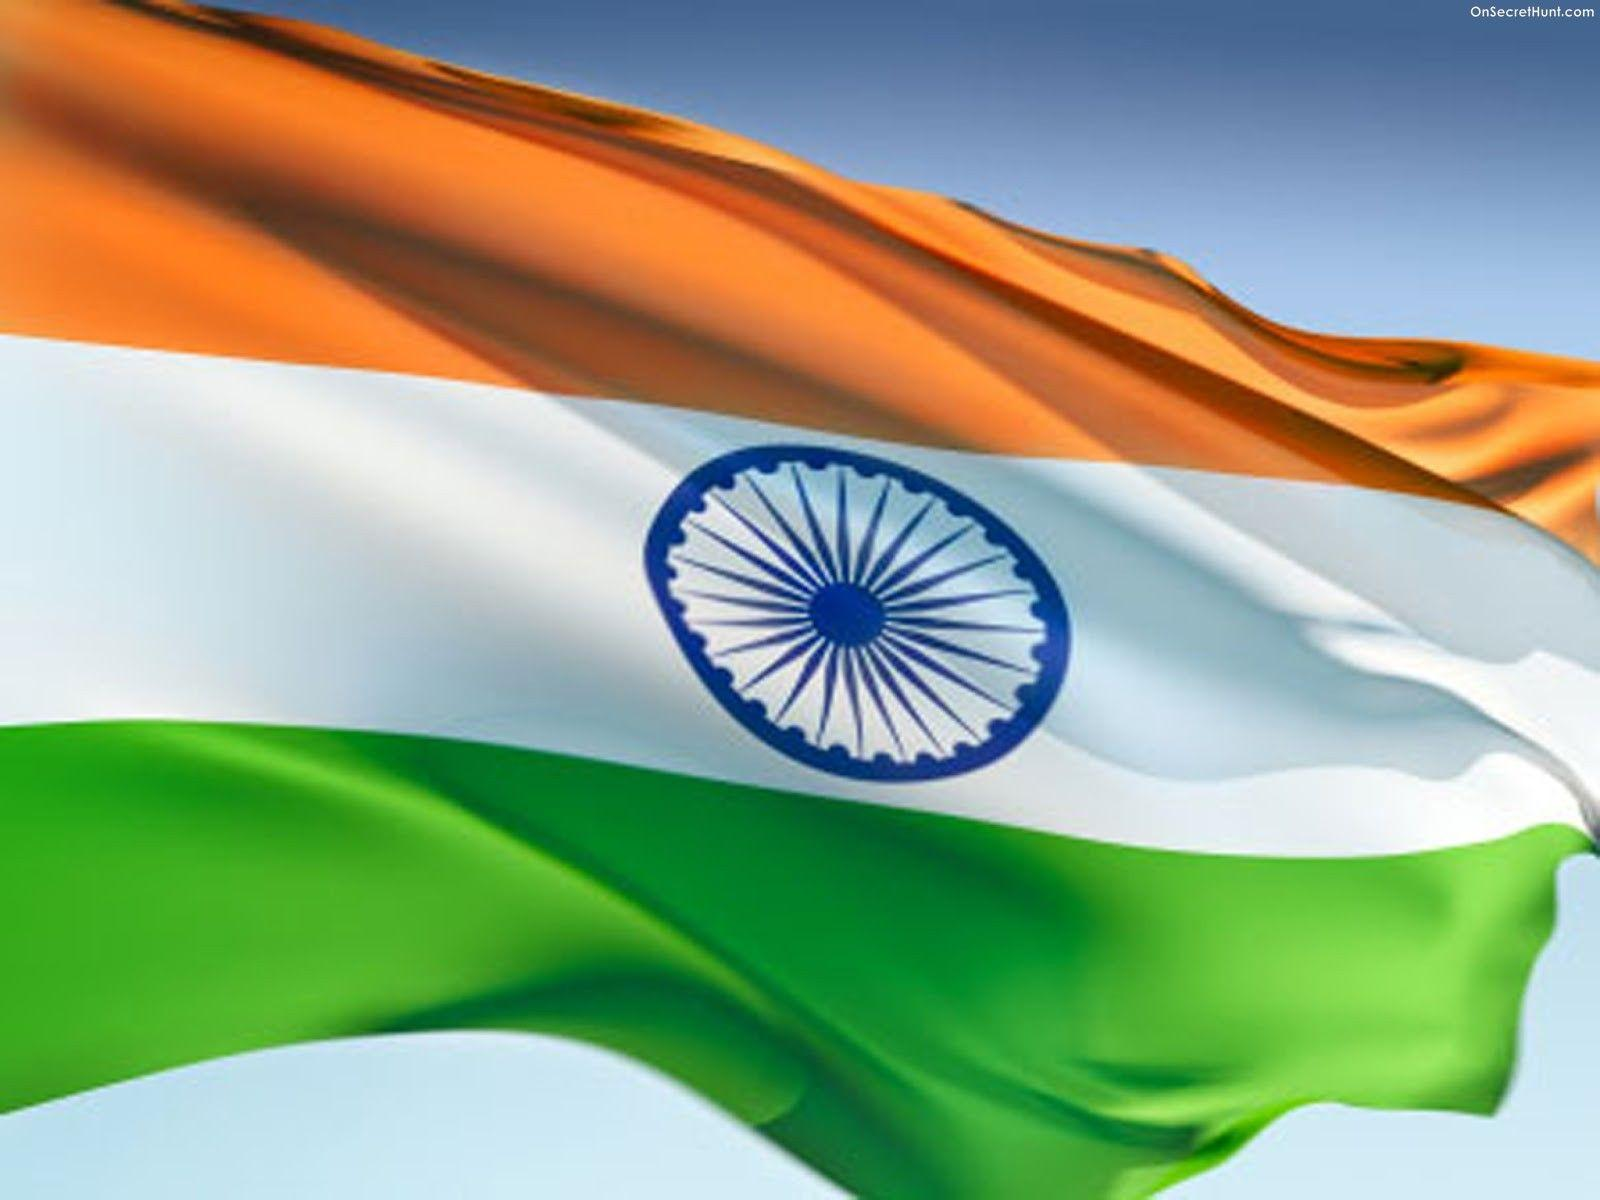 flag indian india country wallpapers january forget never wallpapercave kalamboli